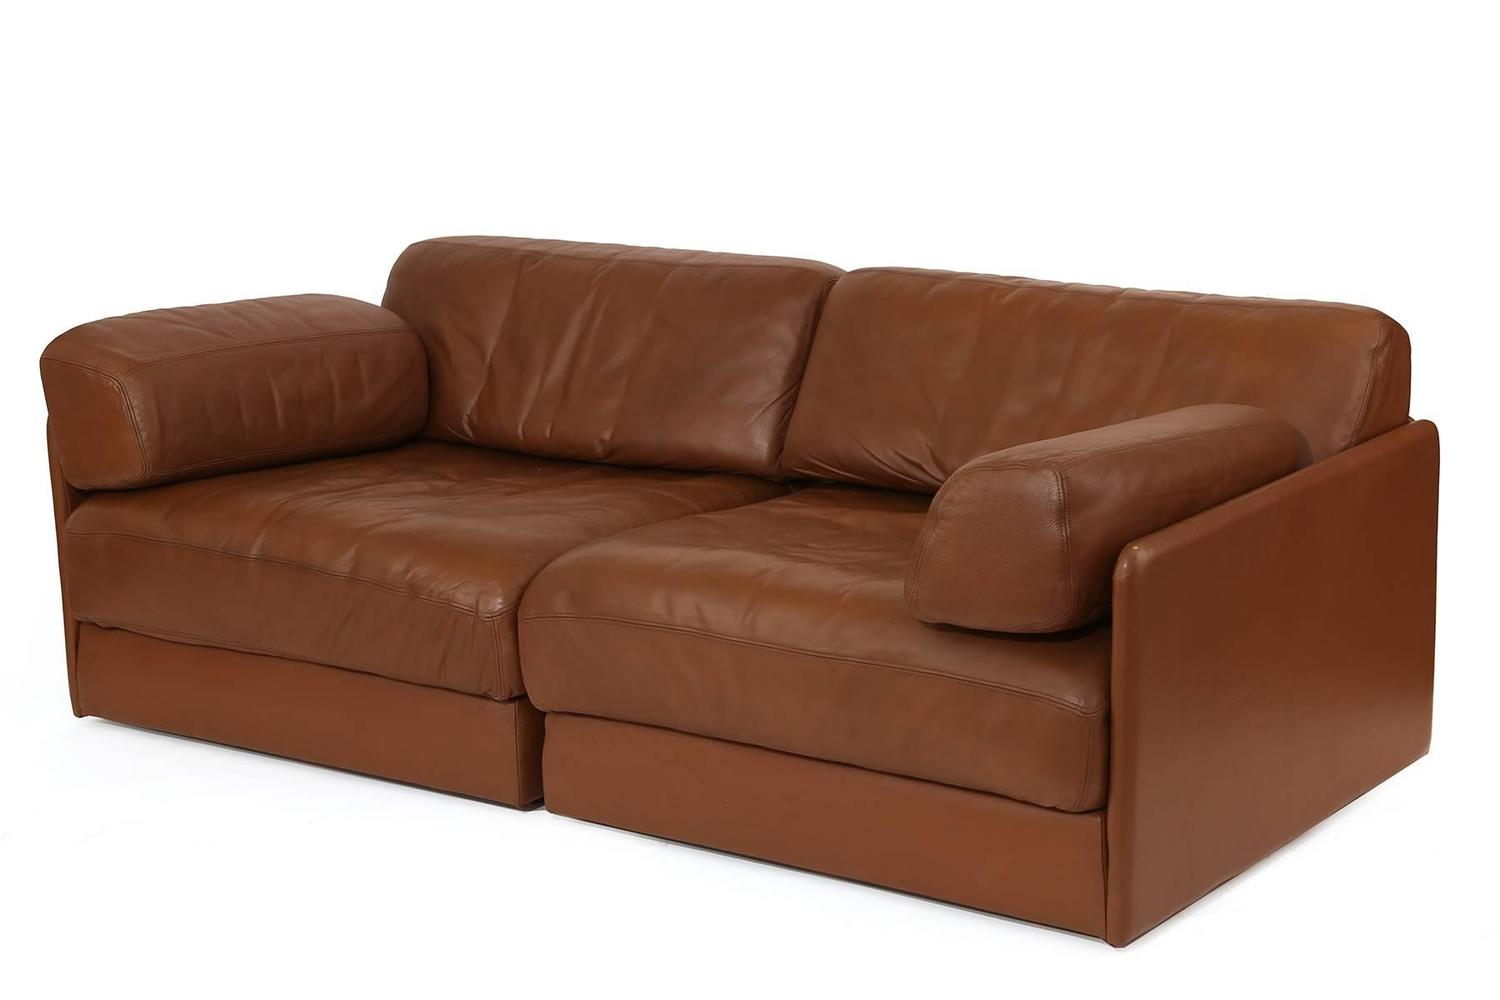 De Sede Convertible Leather Sofa Or Chairs For Sale At 1stdibs